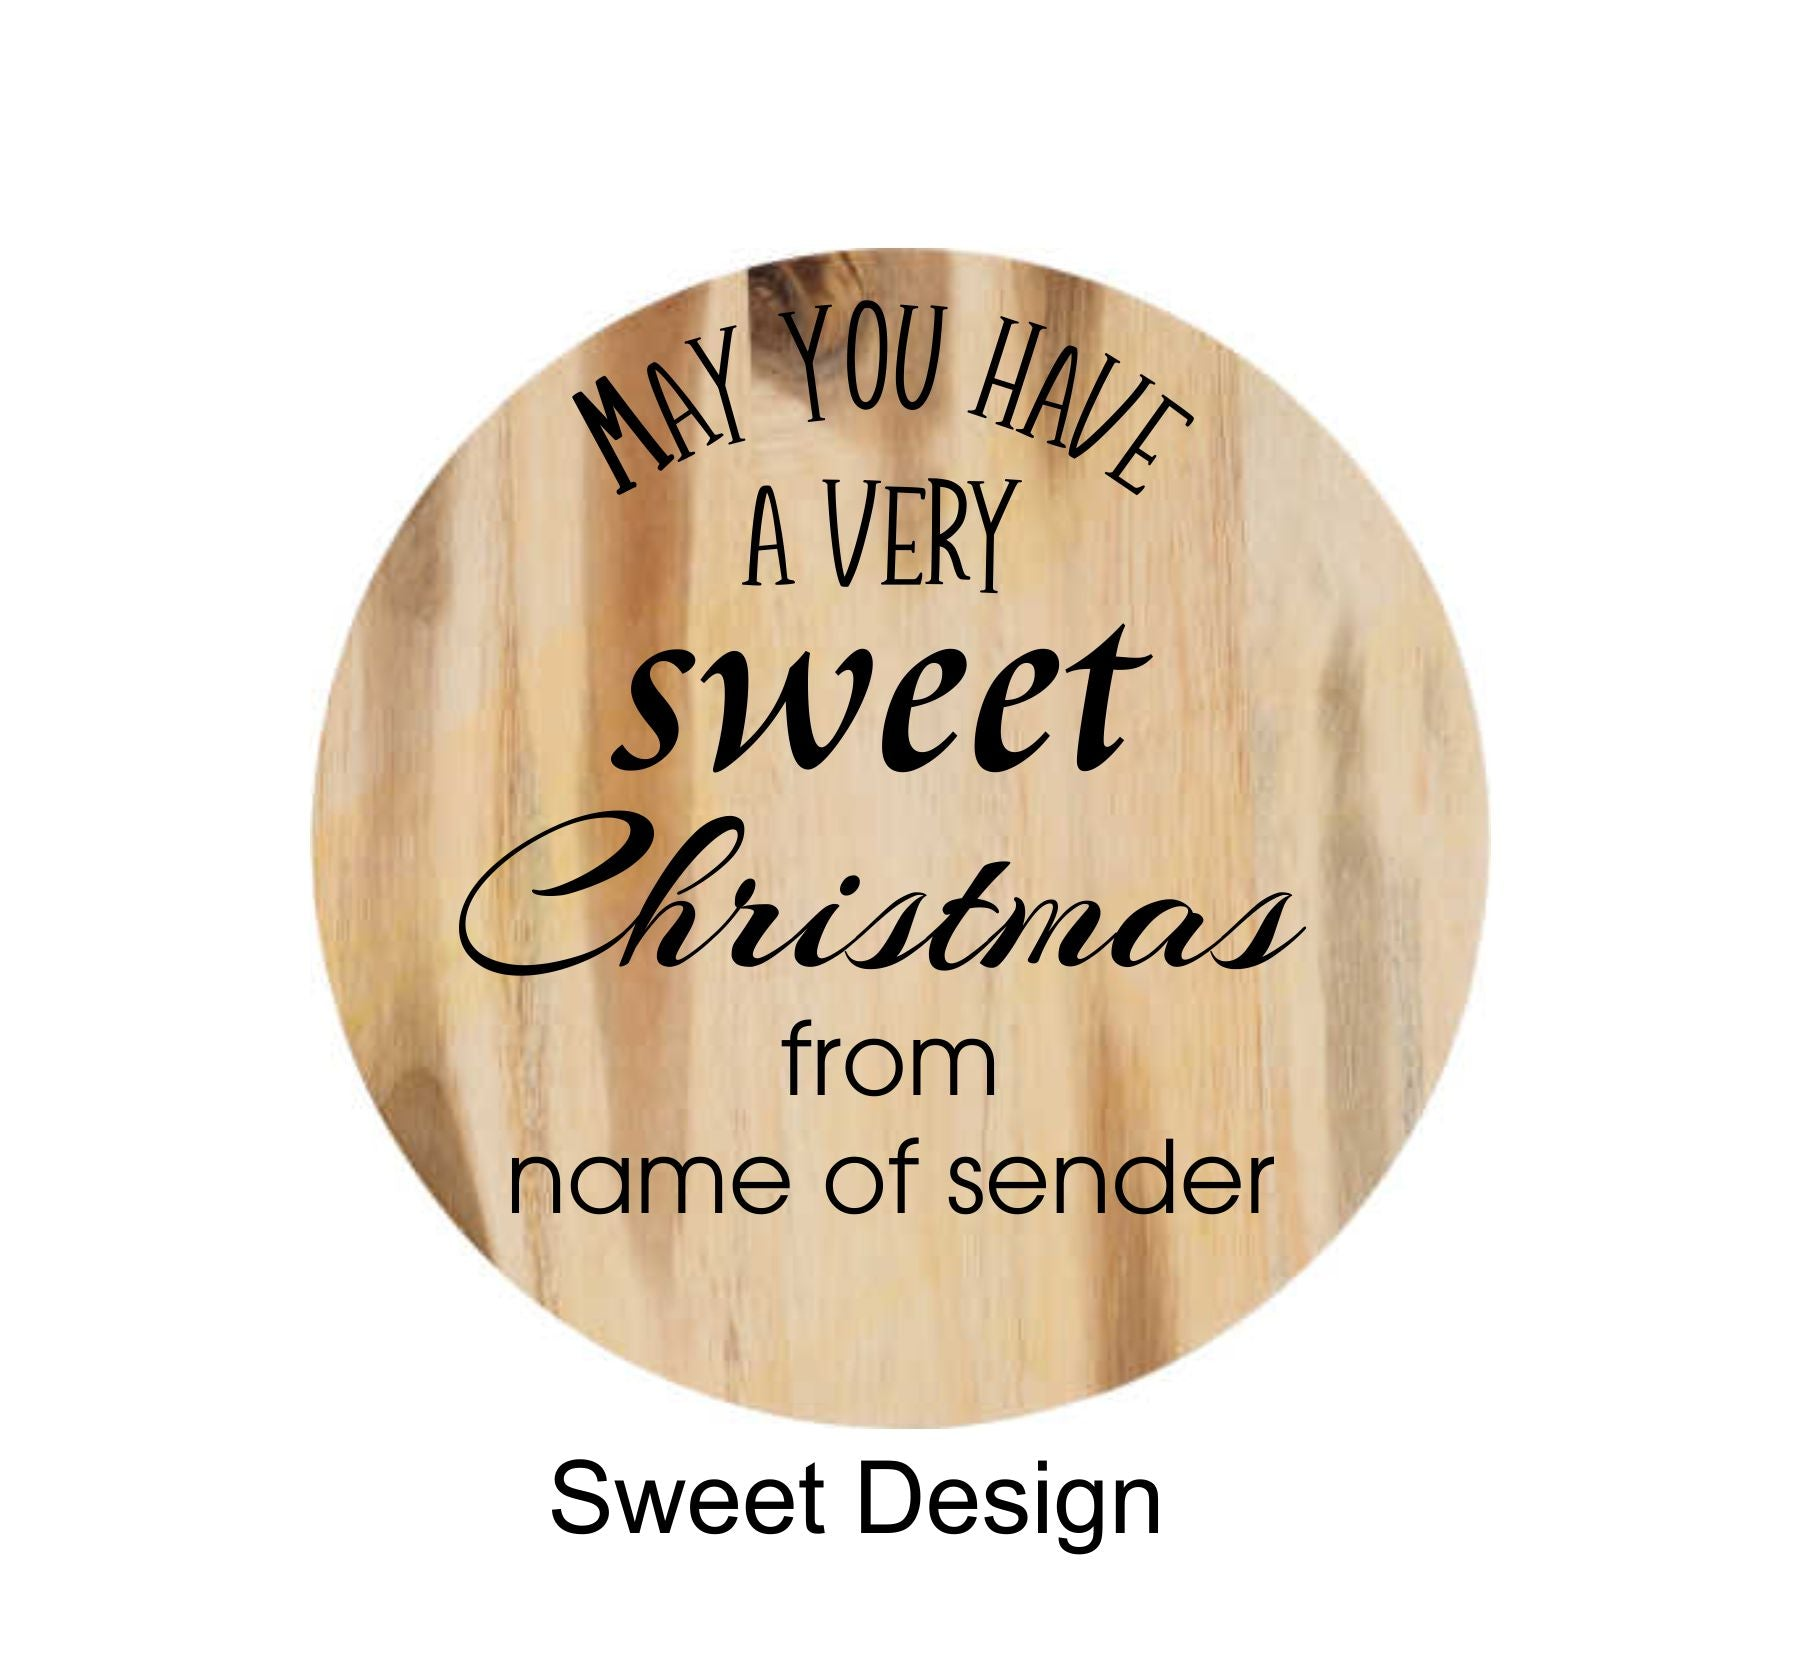 Sweet Christmas Engraving Design for Ceramic Jars